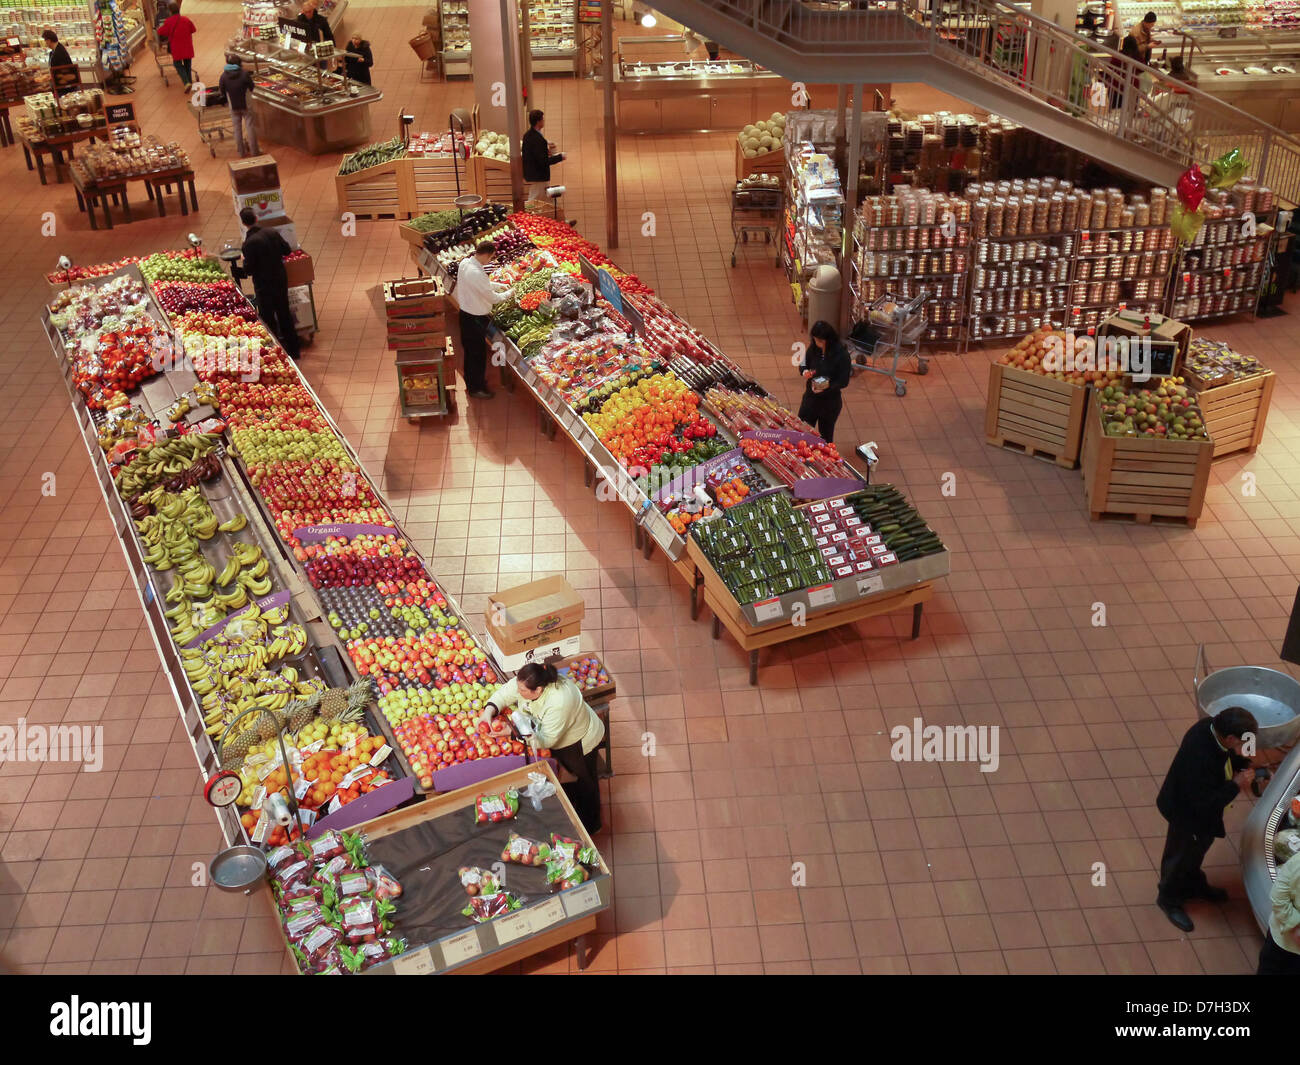 supermarket grocery store fruit stall - Stock Image